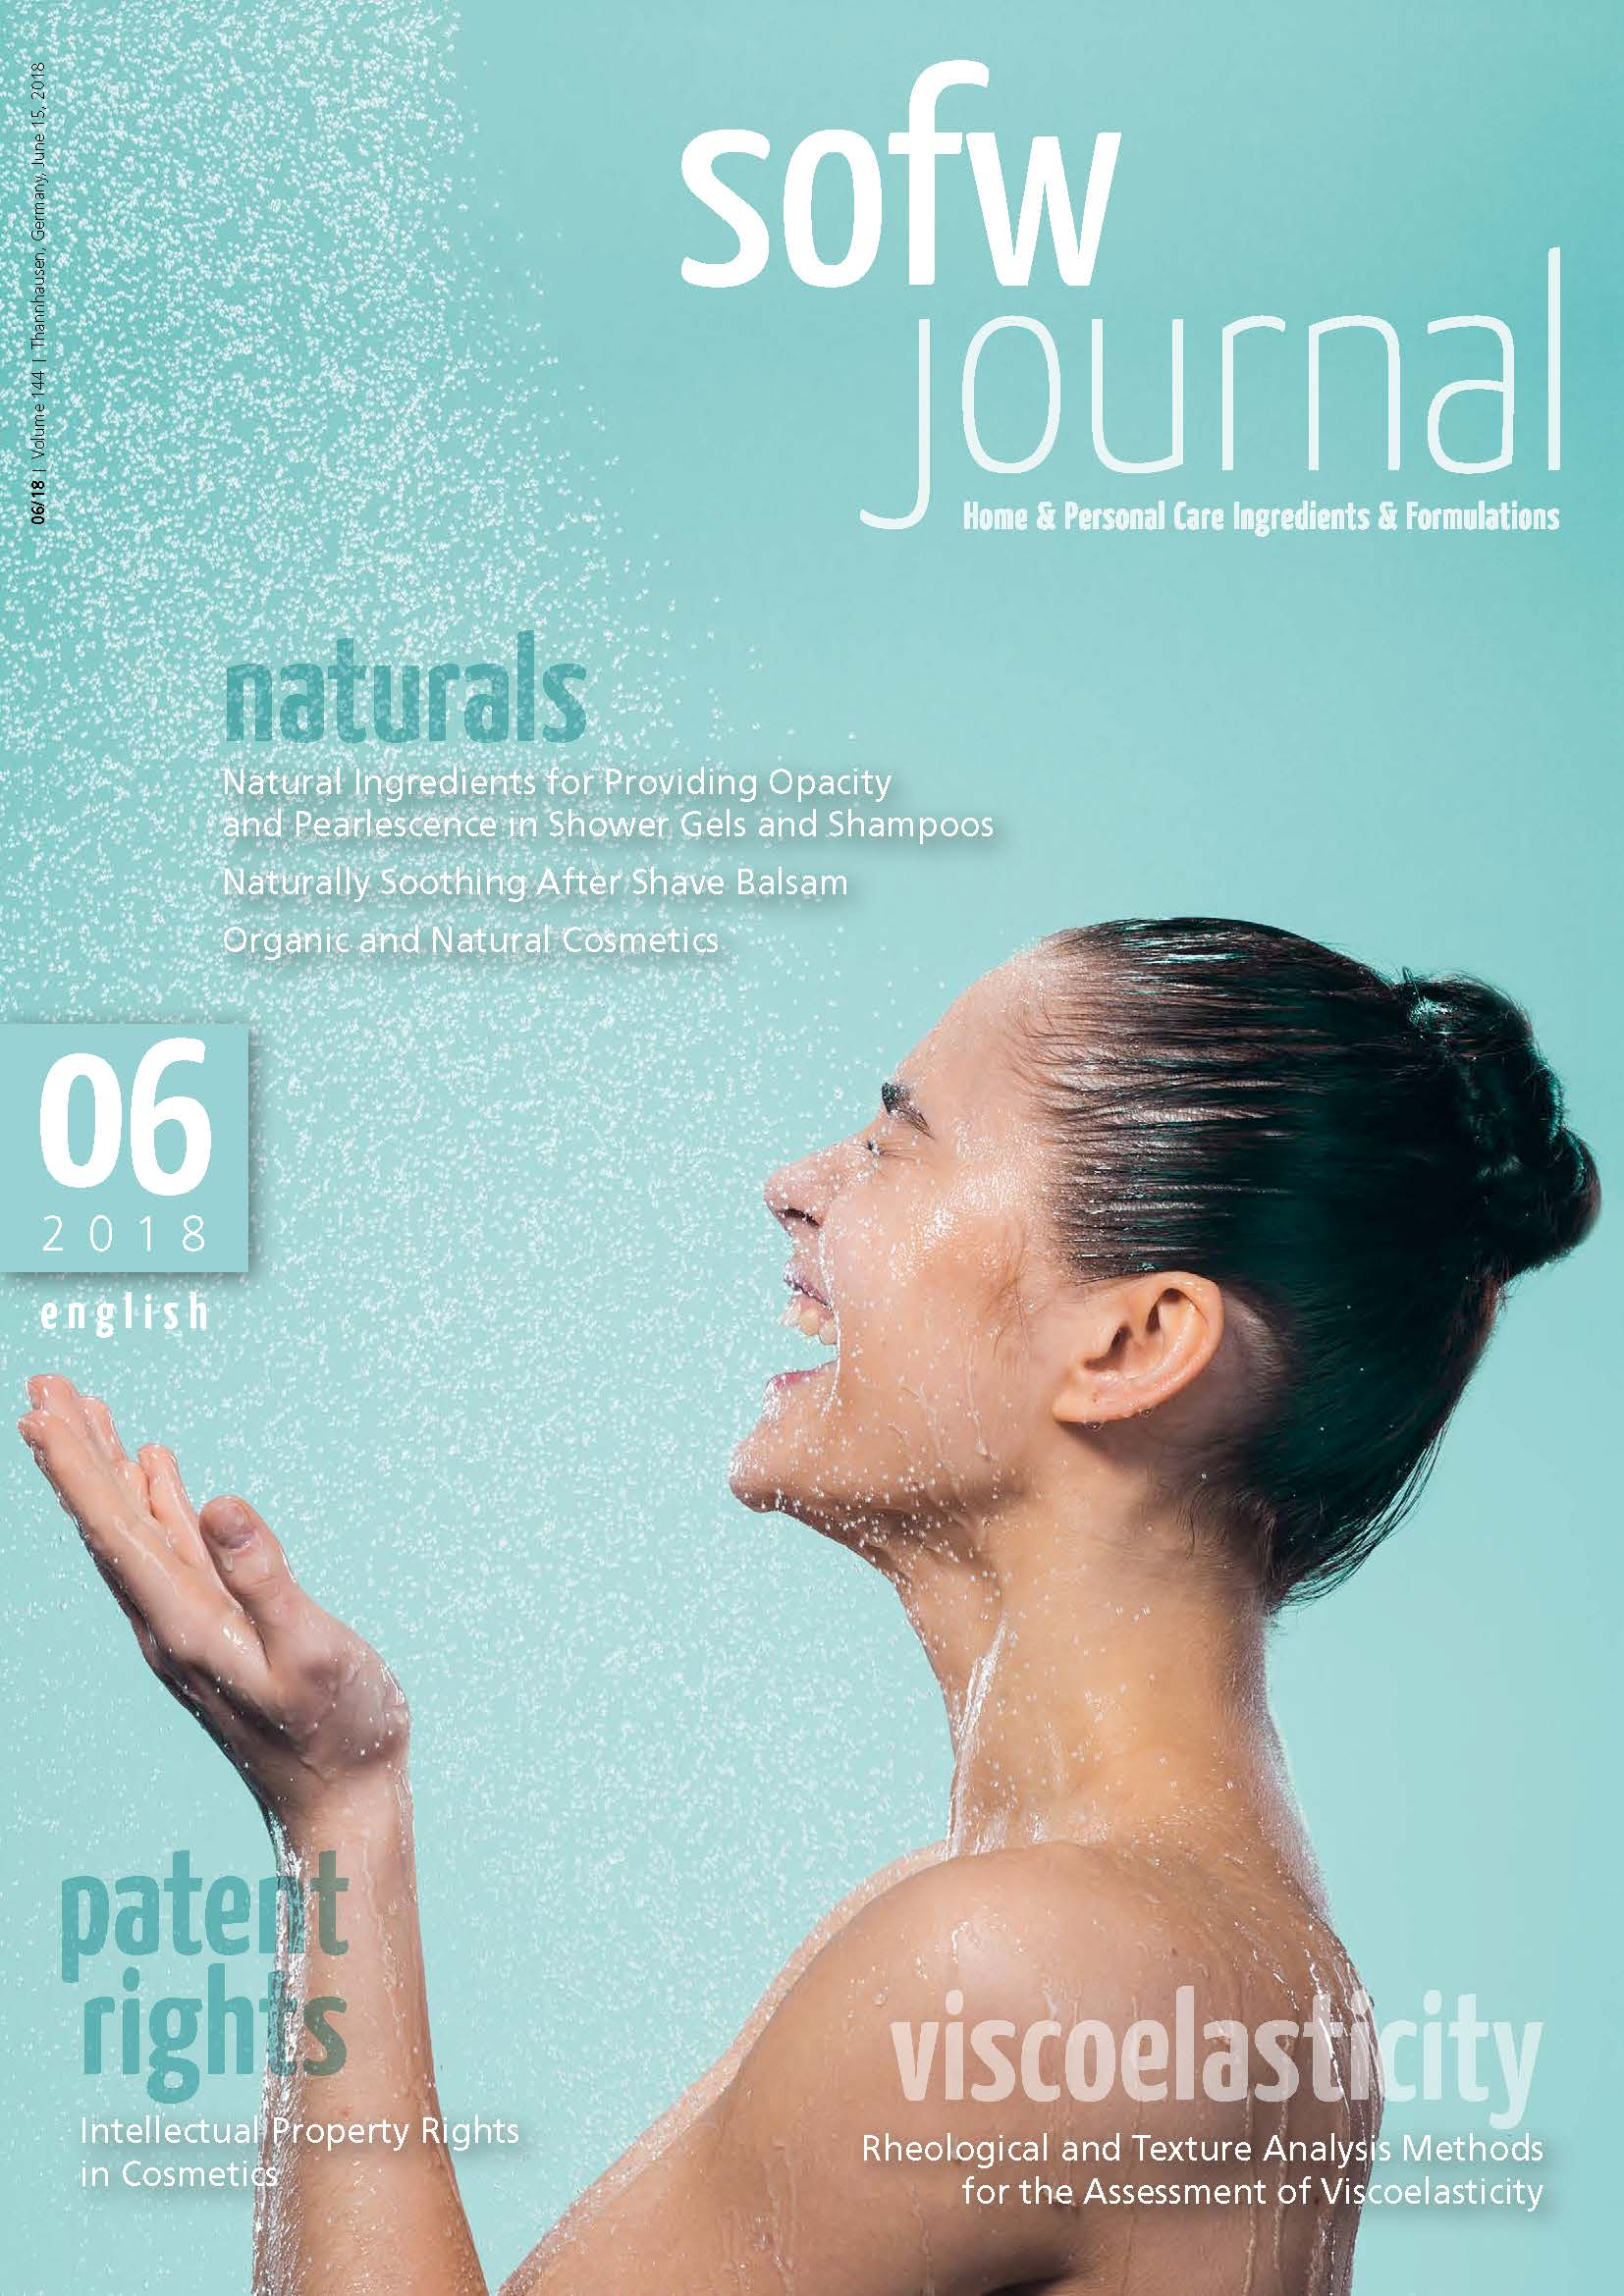 sofwjournal_en_2018_06_cover